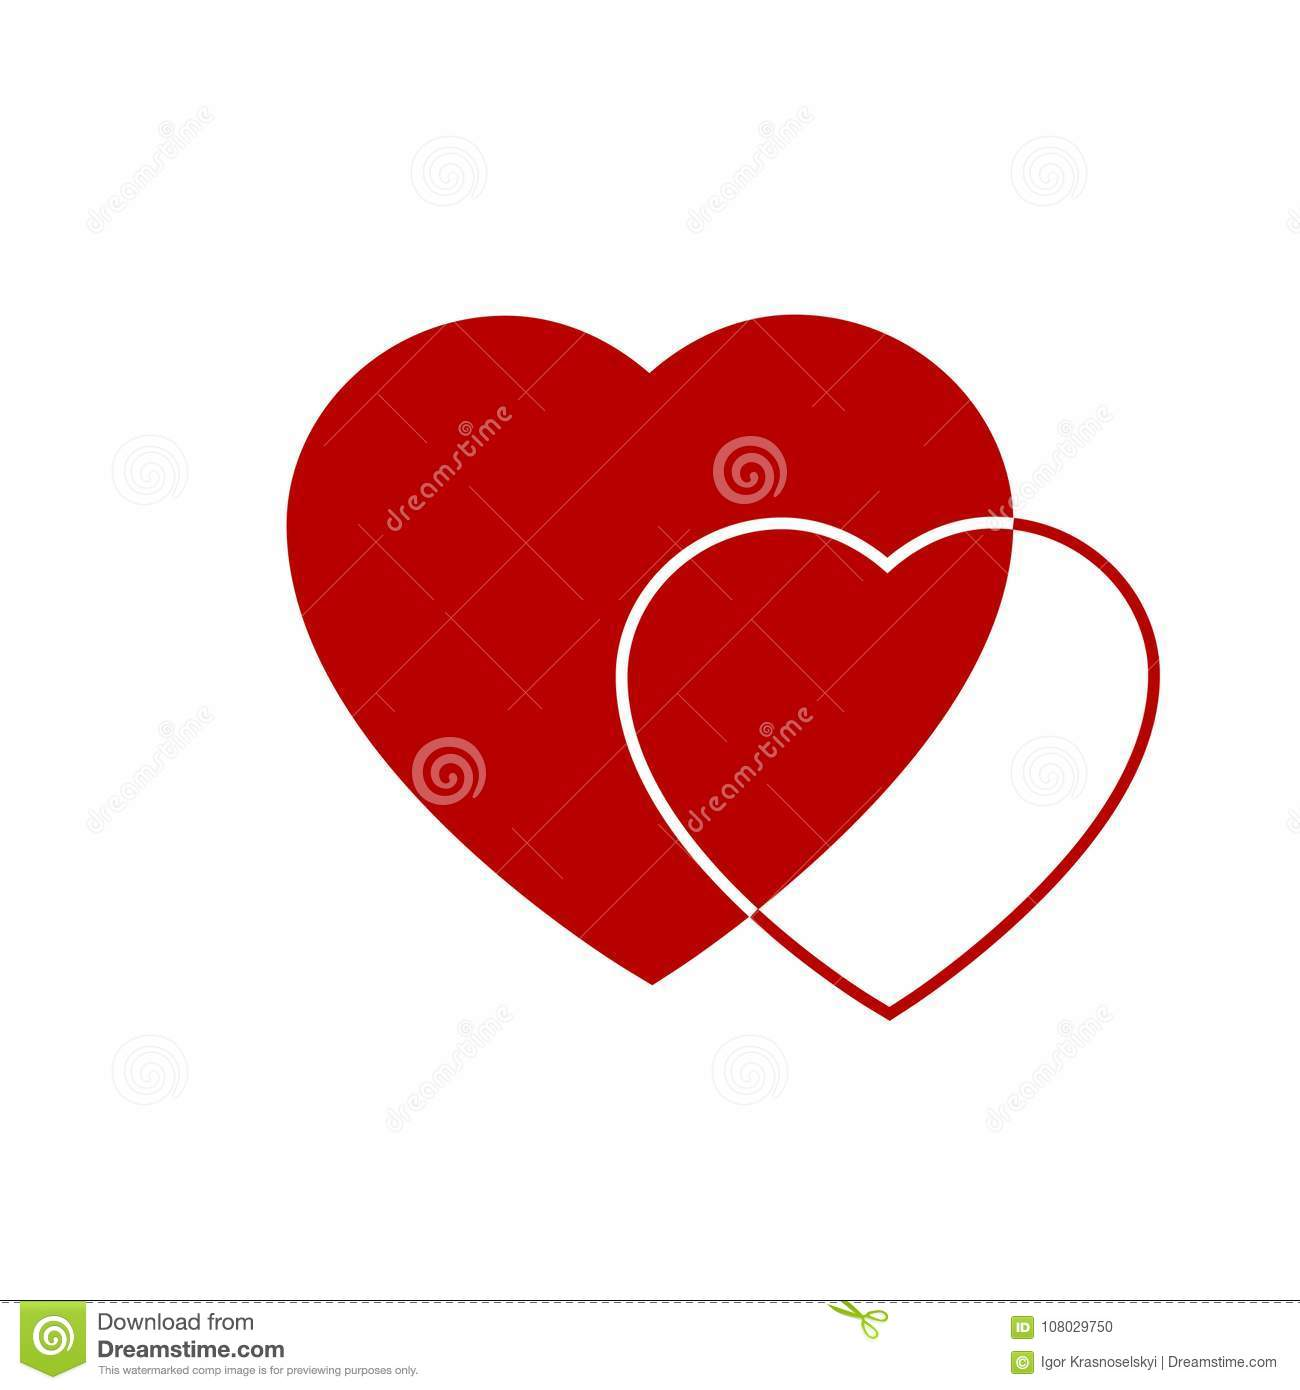 Two red hearts icon. Hearts on transparent background. Love icon. Hearts from greeting card on Valentine day